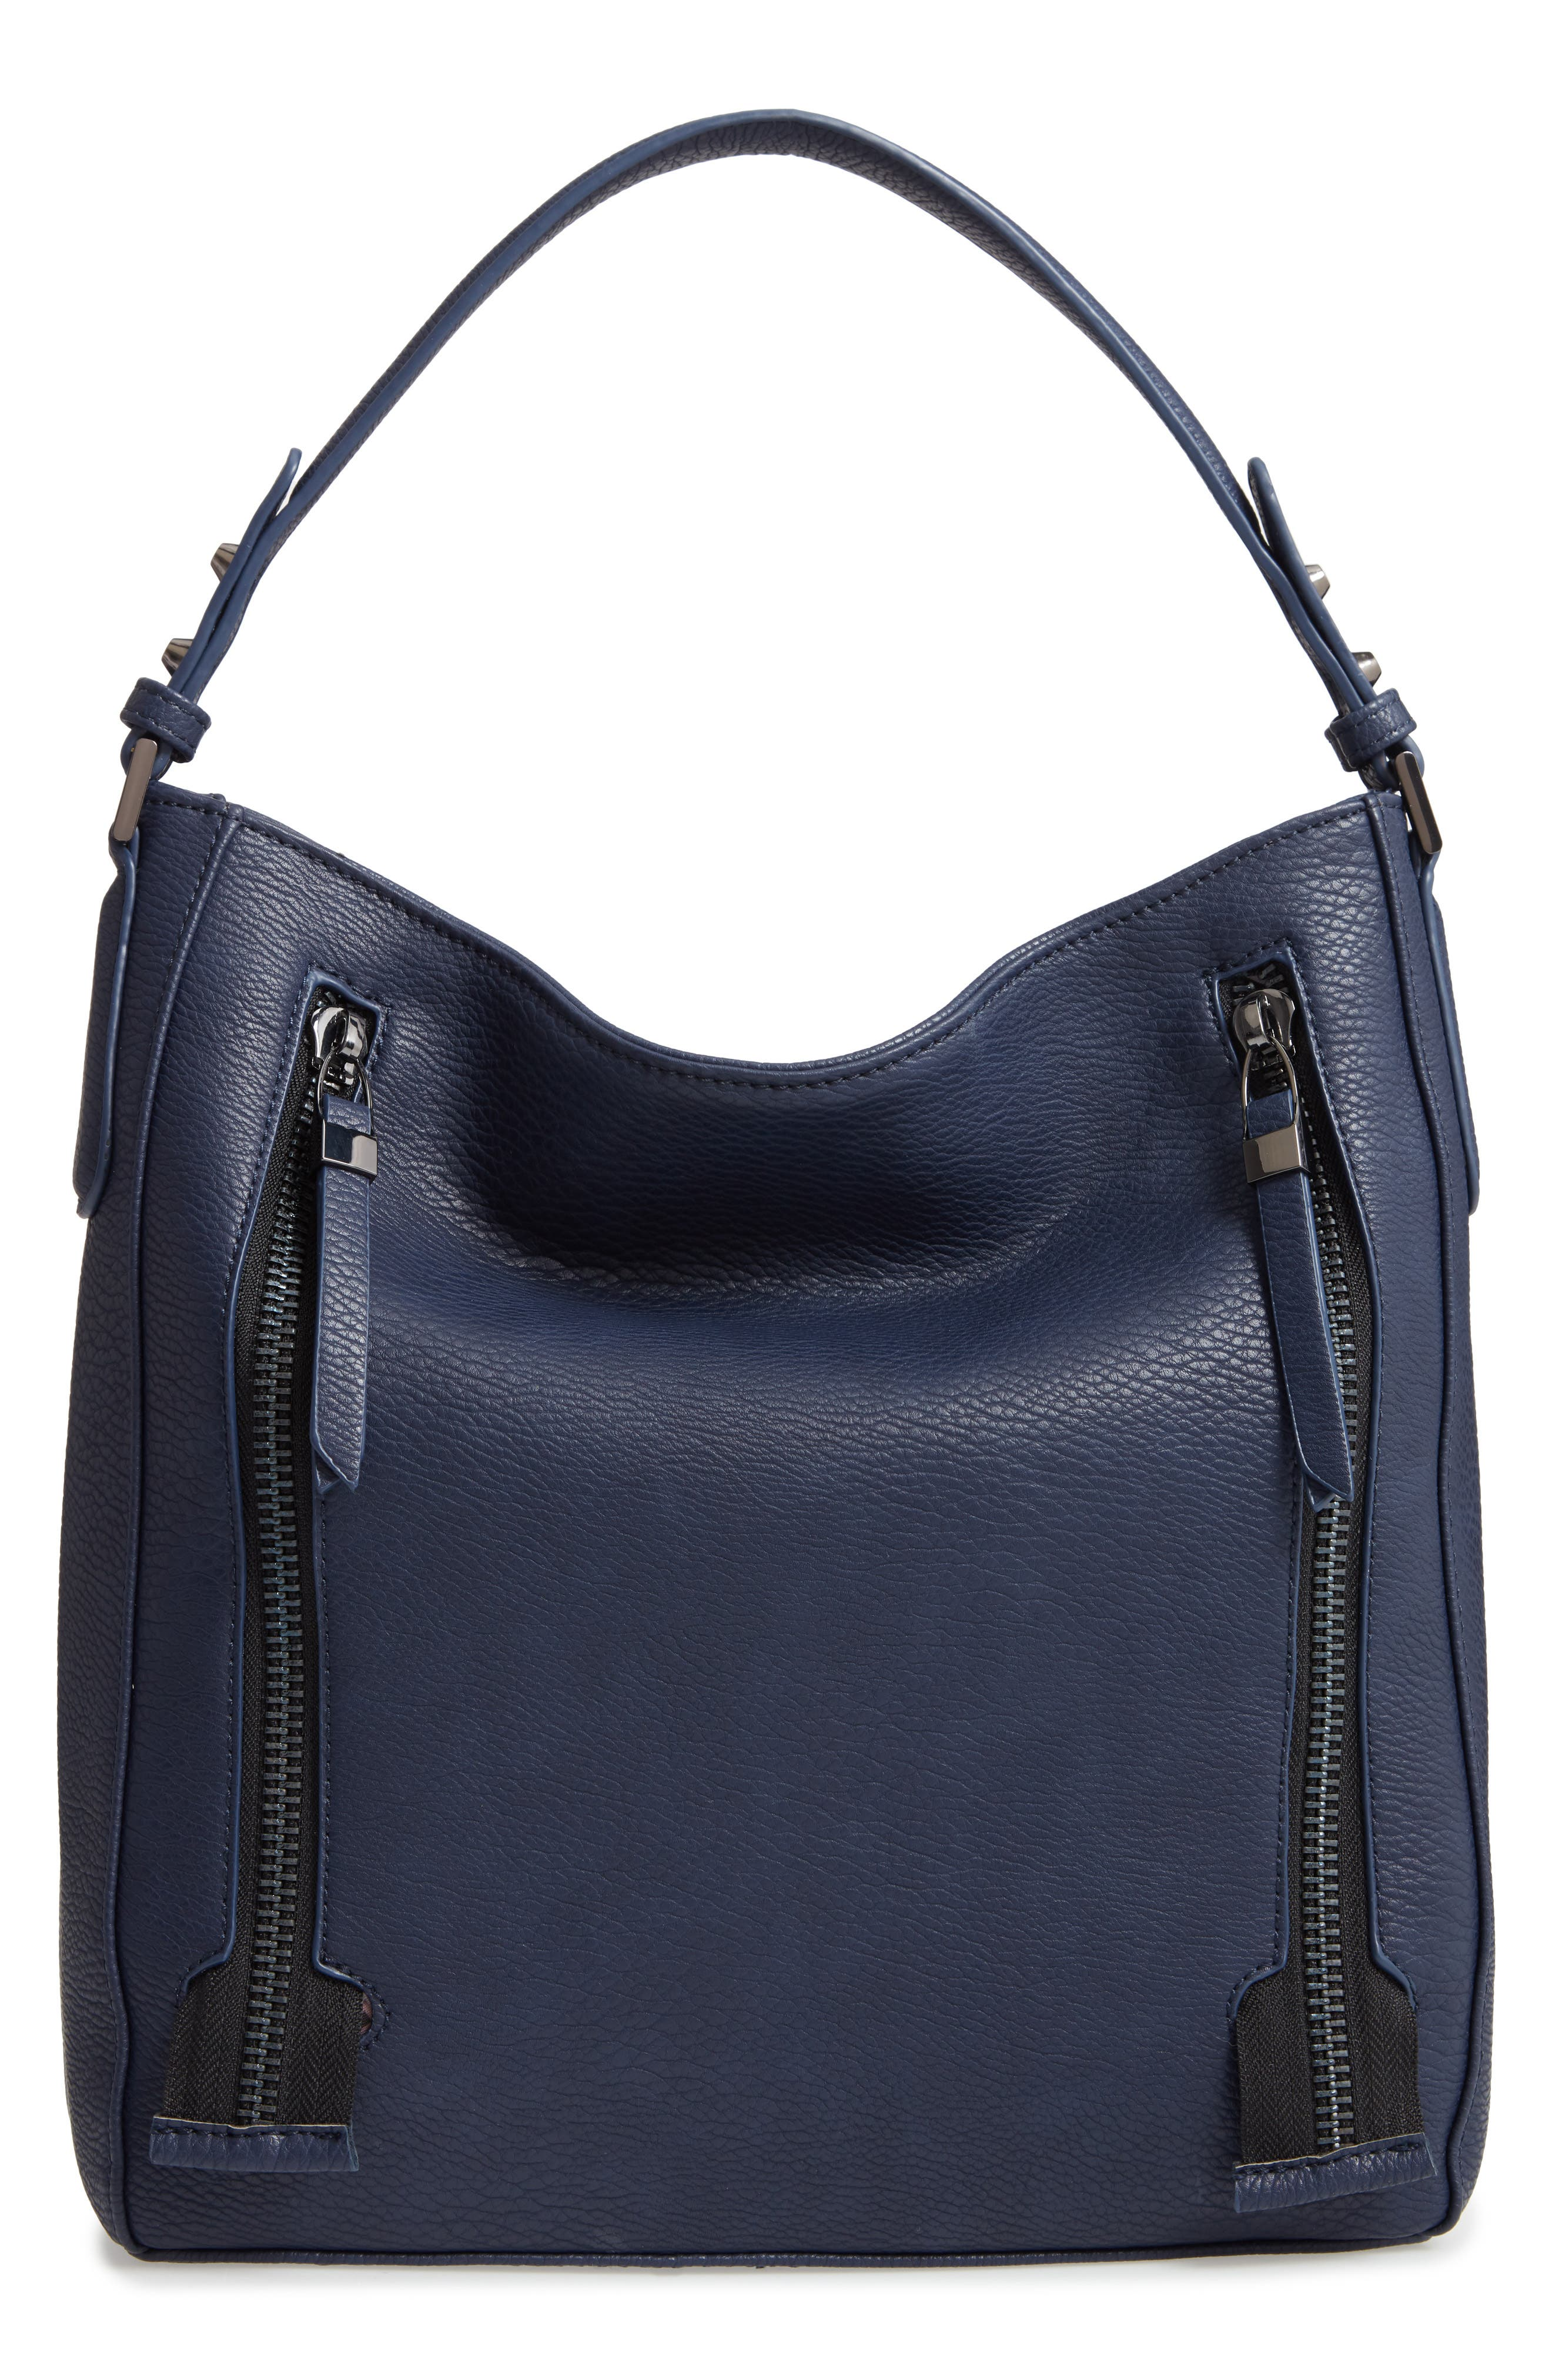 SONDRA ROBERTS Faux Leather Hobo, Main, color, NAVY